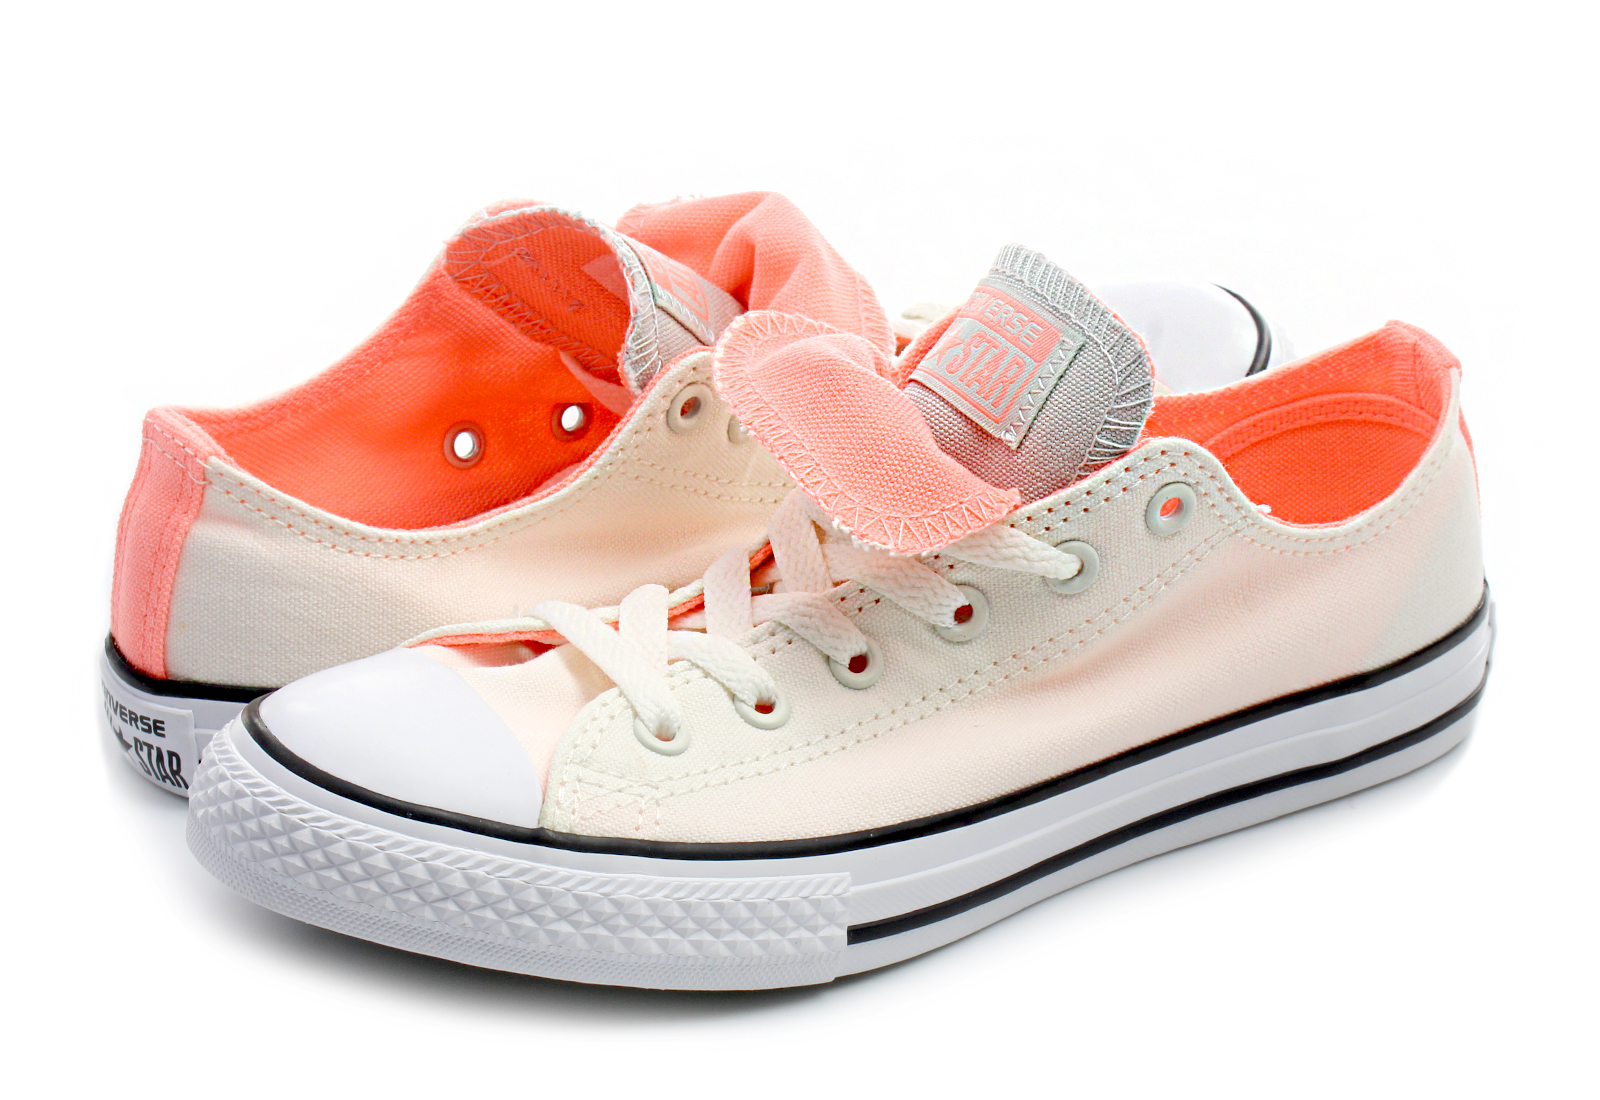 b3a363a8d6f8 Converse Low Sneakers - Chuck Taylor All Star Double Tongue ...